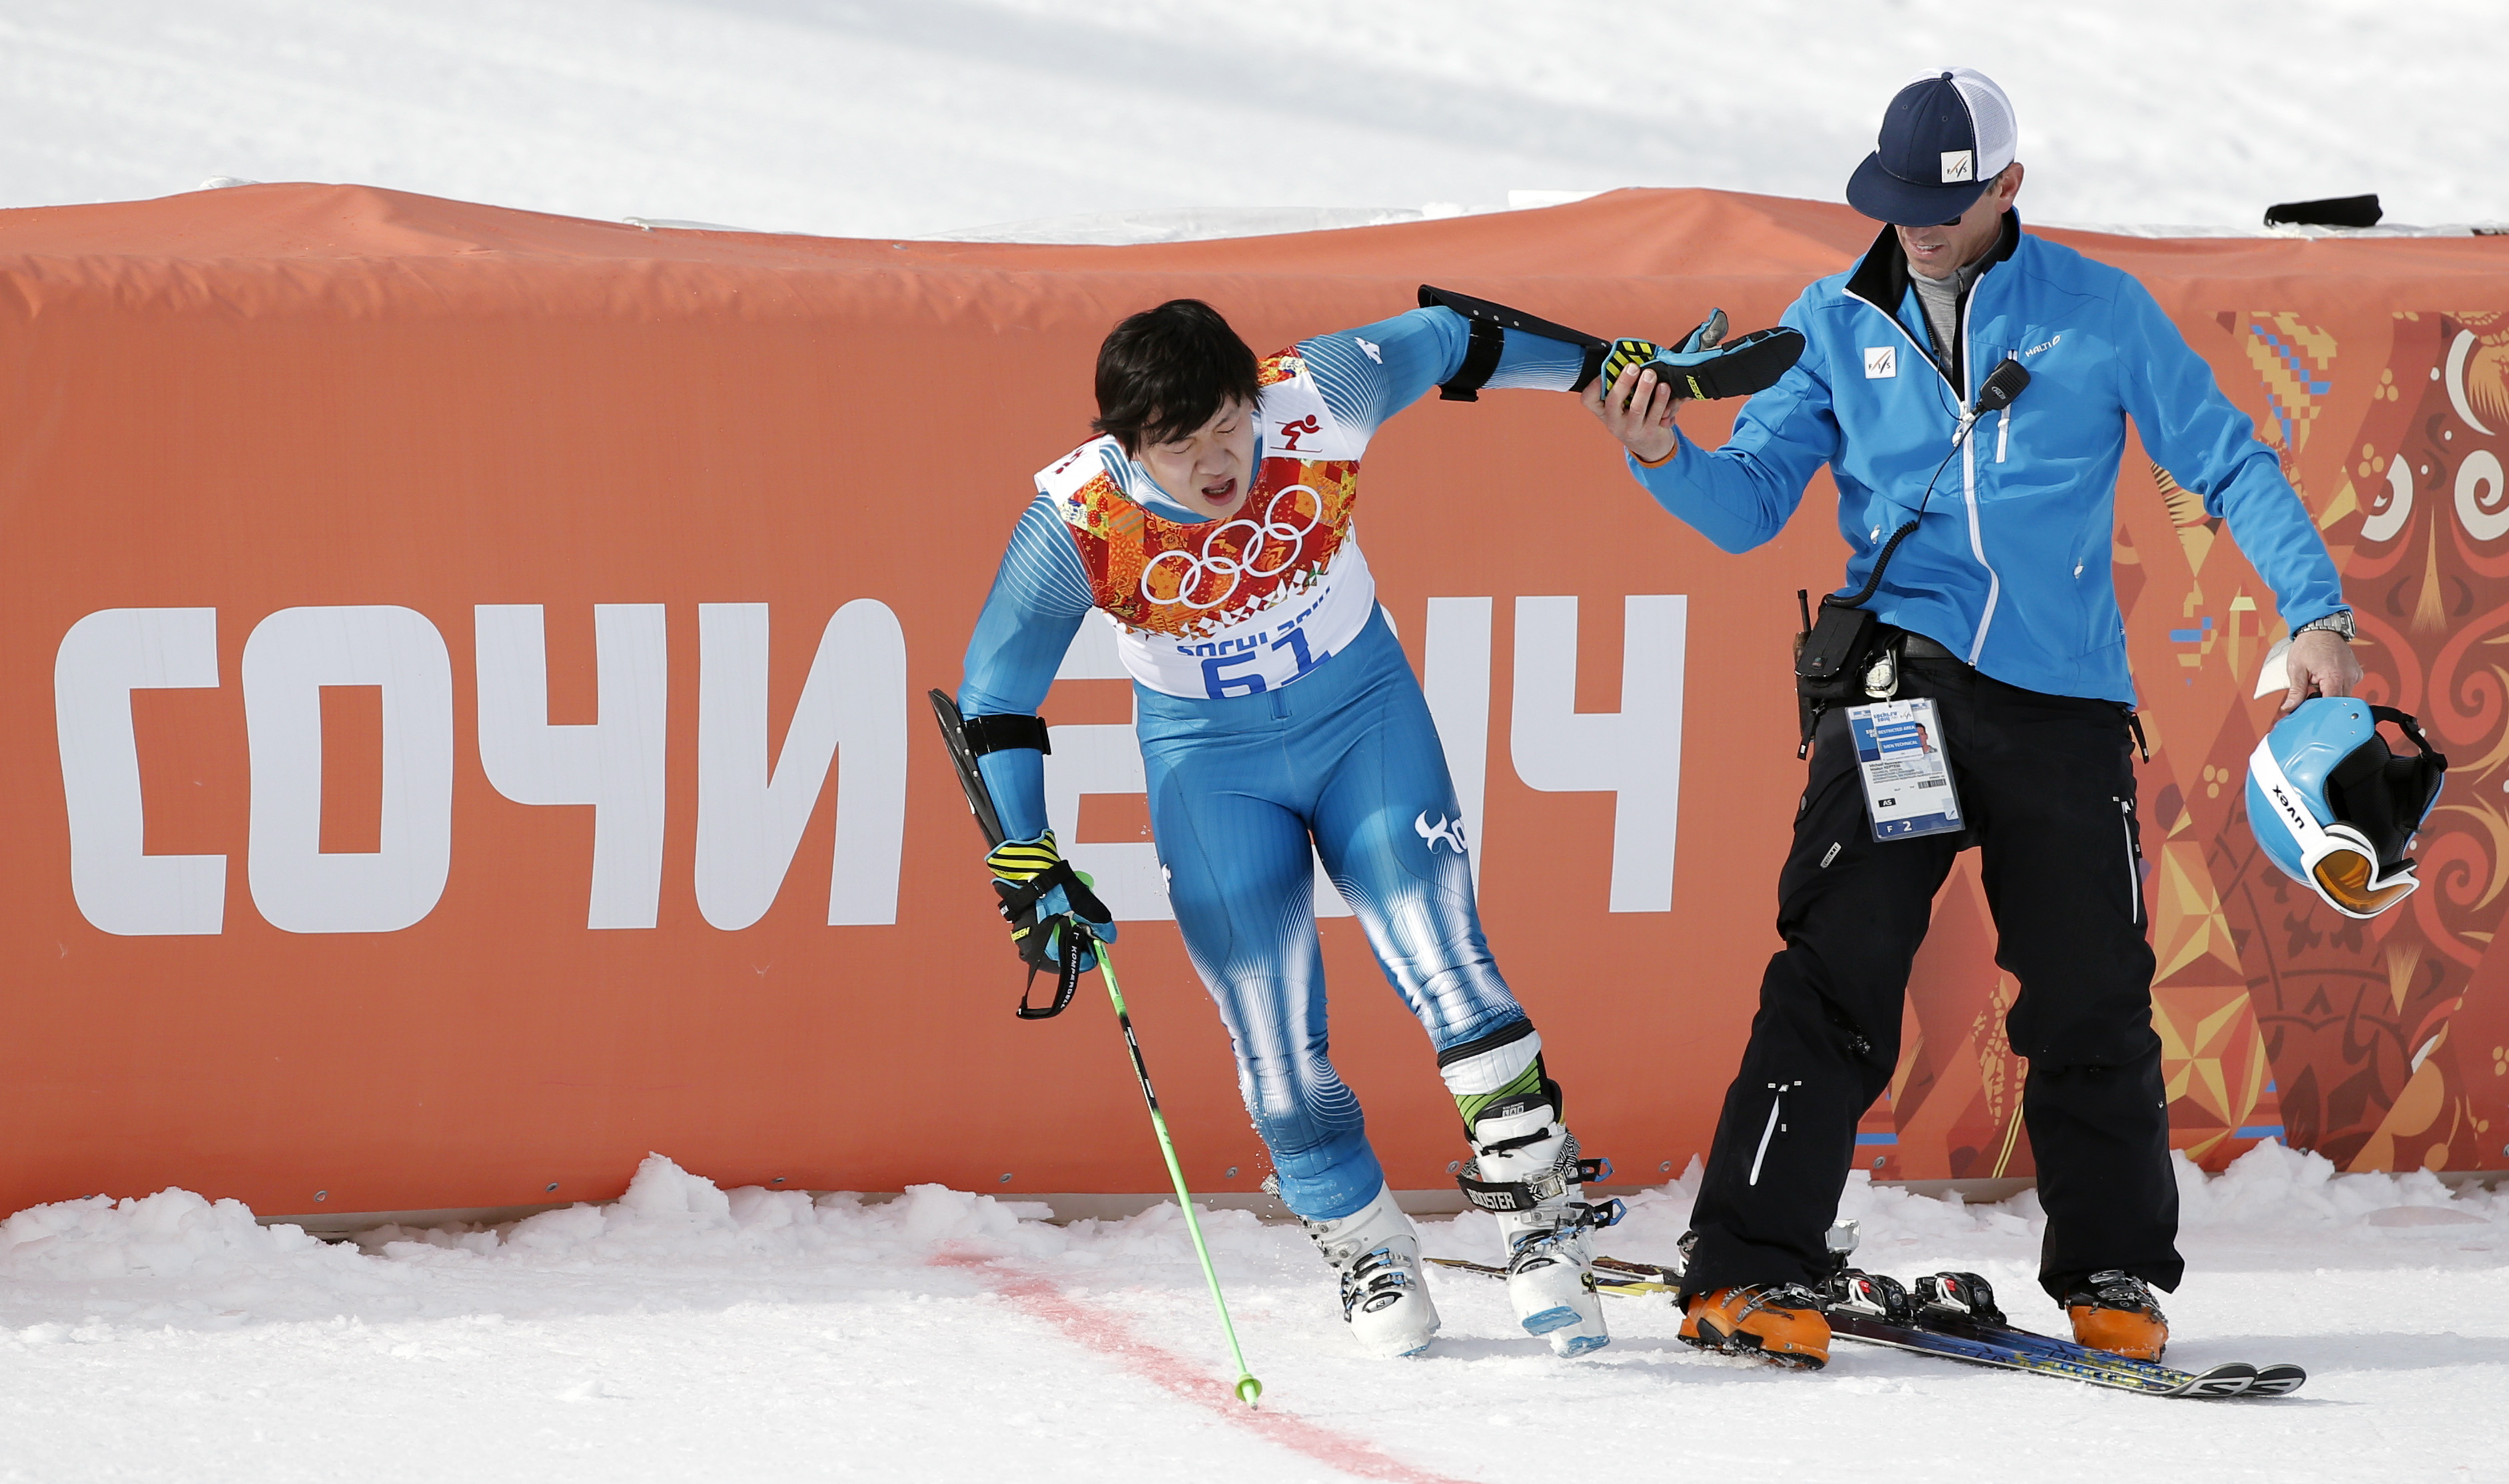 An official assists South Korea's Kyung Sung-yun after he crashed  in the first run of the men's giant slalom at the Sochi 2014 Winter Olympics, Wednesday, Feb. 19, 2014, in Krasnaya Polyana, Russia. (AP Photo/Christophe Ena)